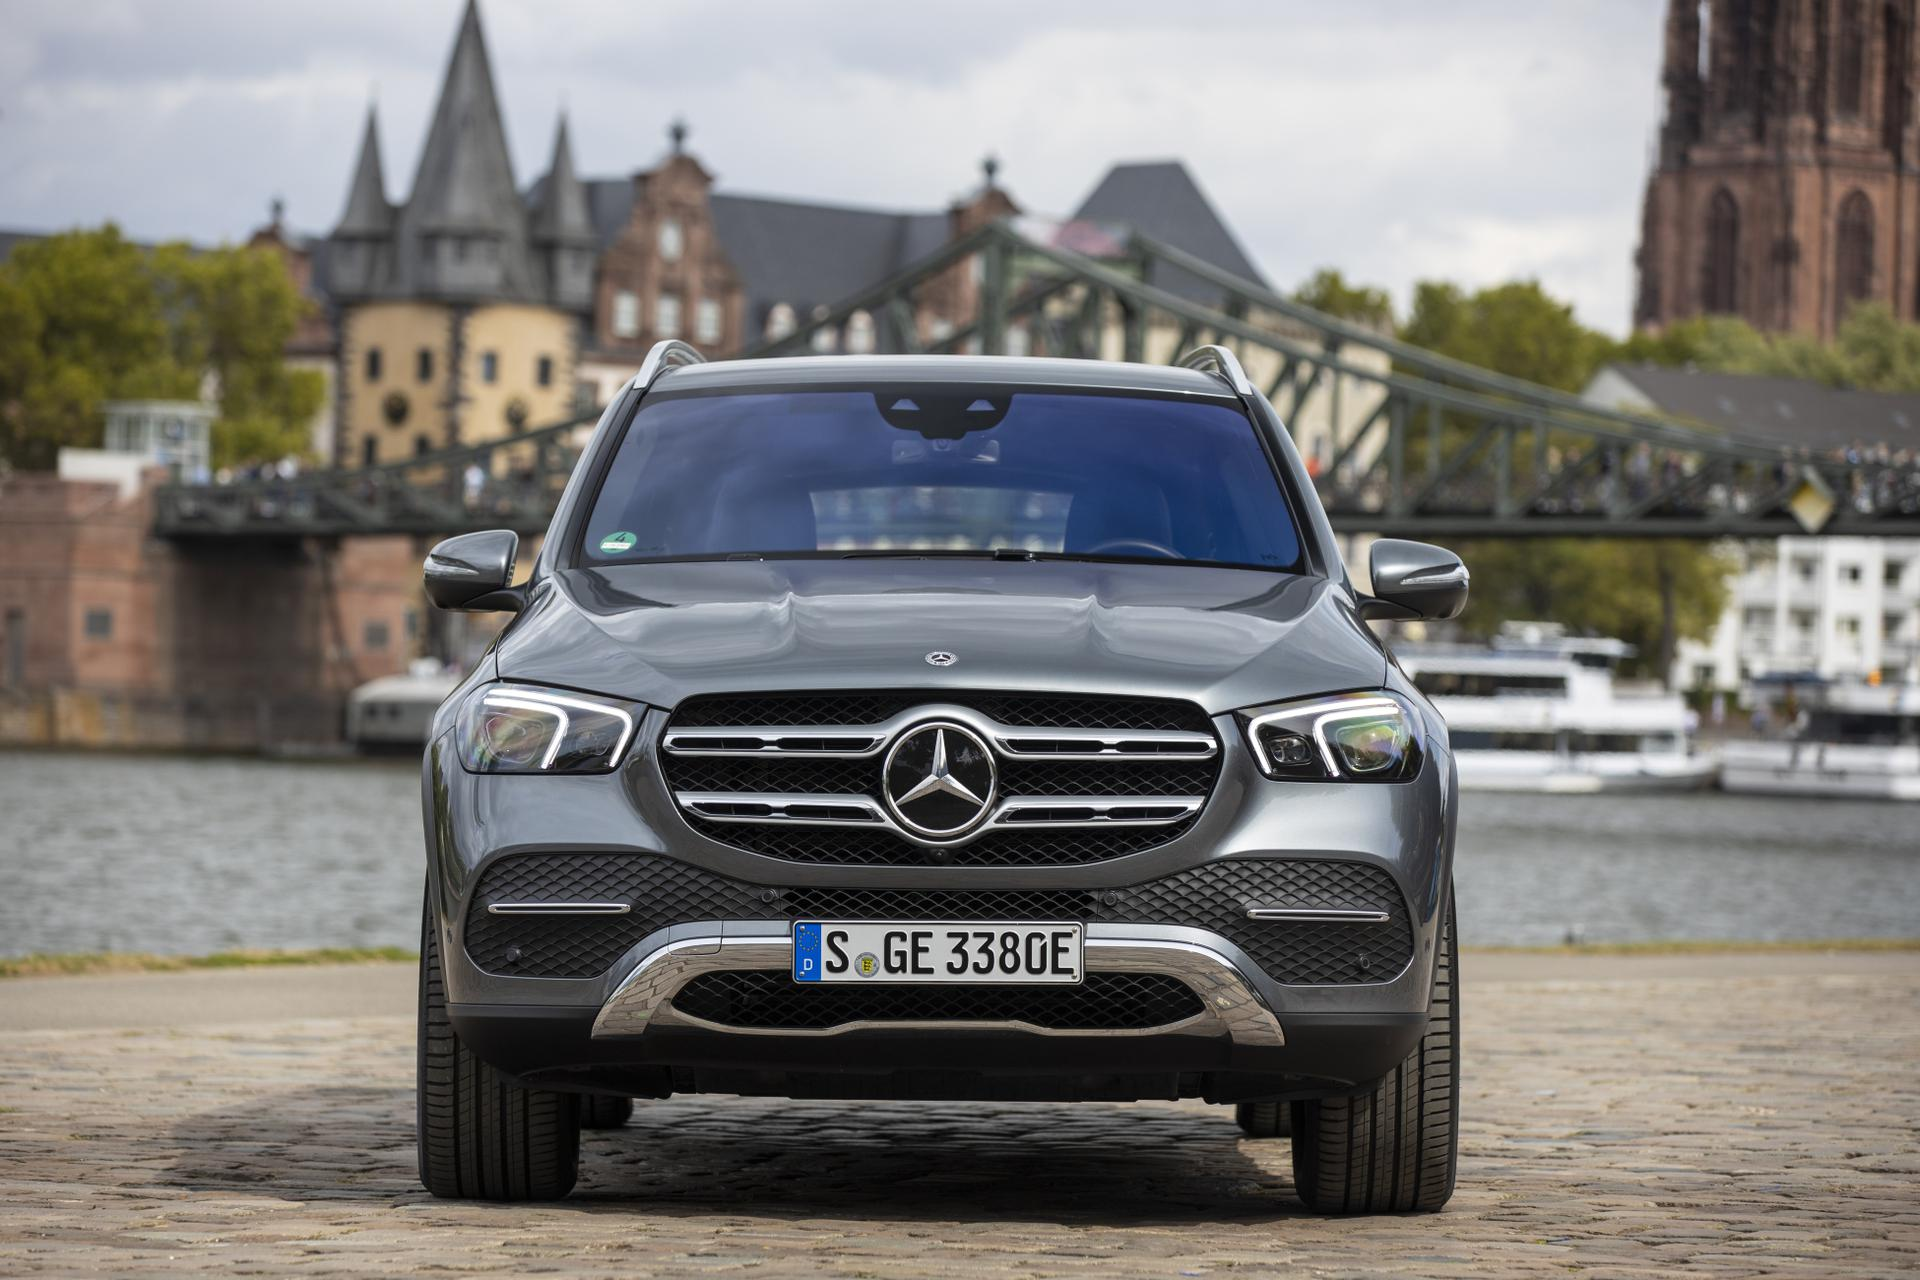 Mercedes-Benz GLE 350de 4MATIC (2020)